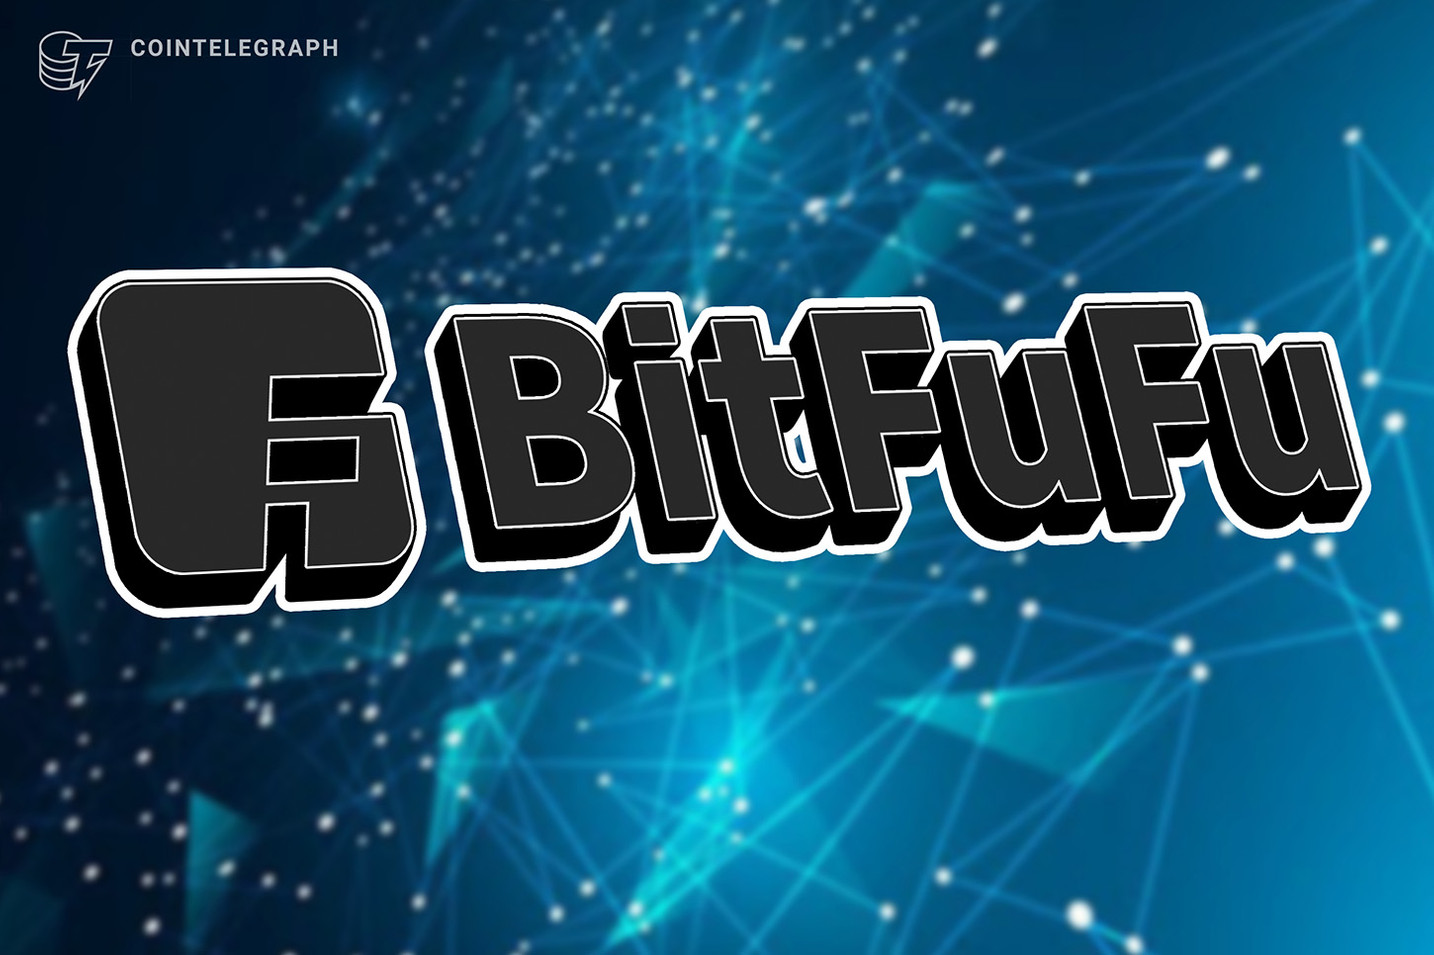 BitFuFu officially endorsed by Bitmain as a crypto mining platform